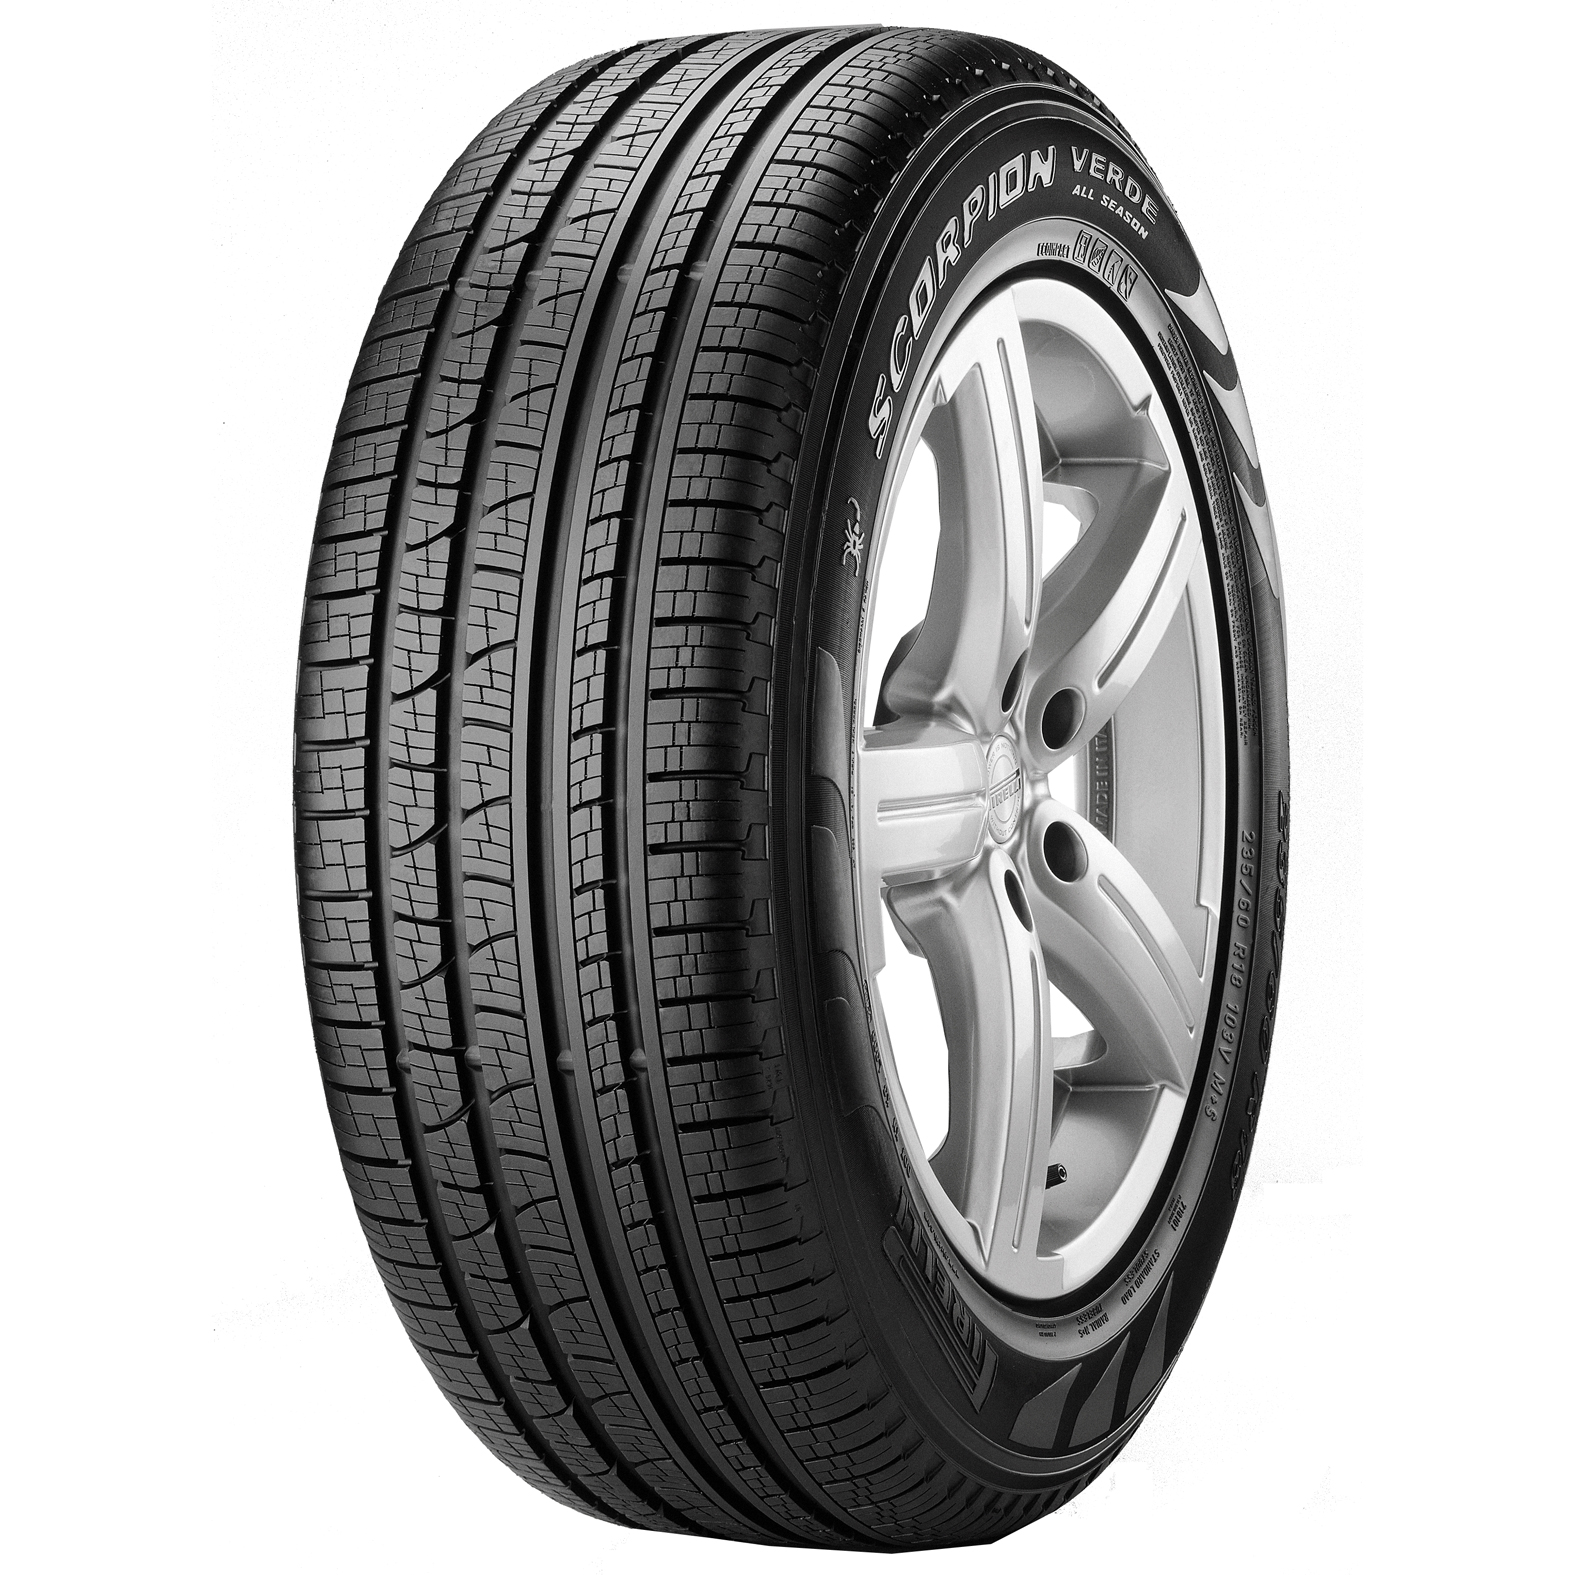 Pirelli Scorpion Verde All Season tire - angle